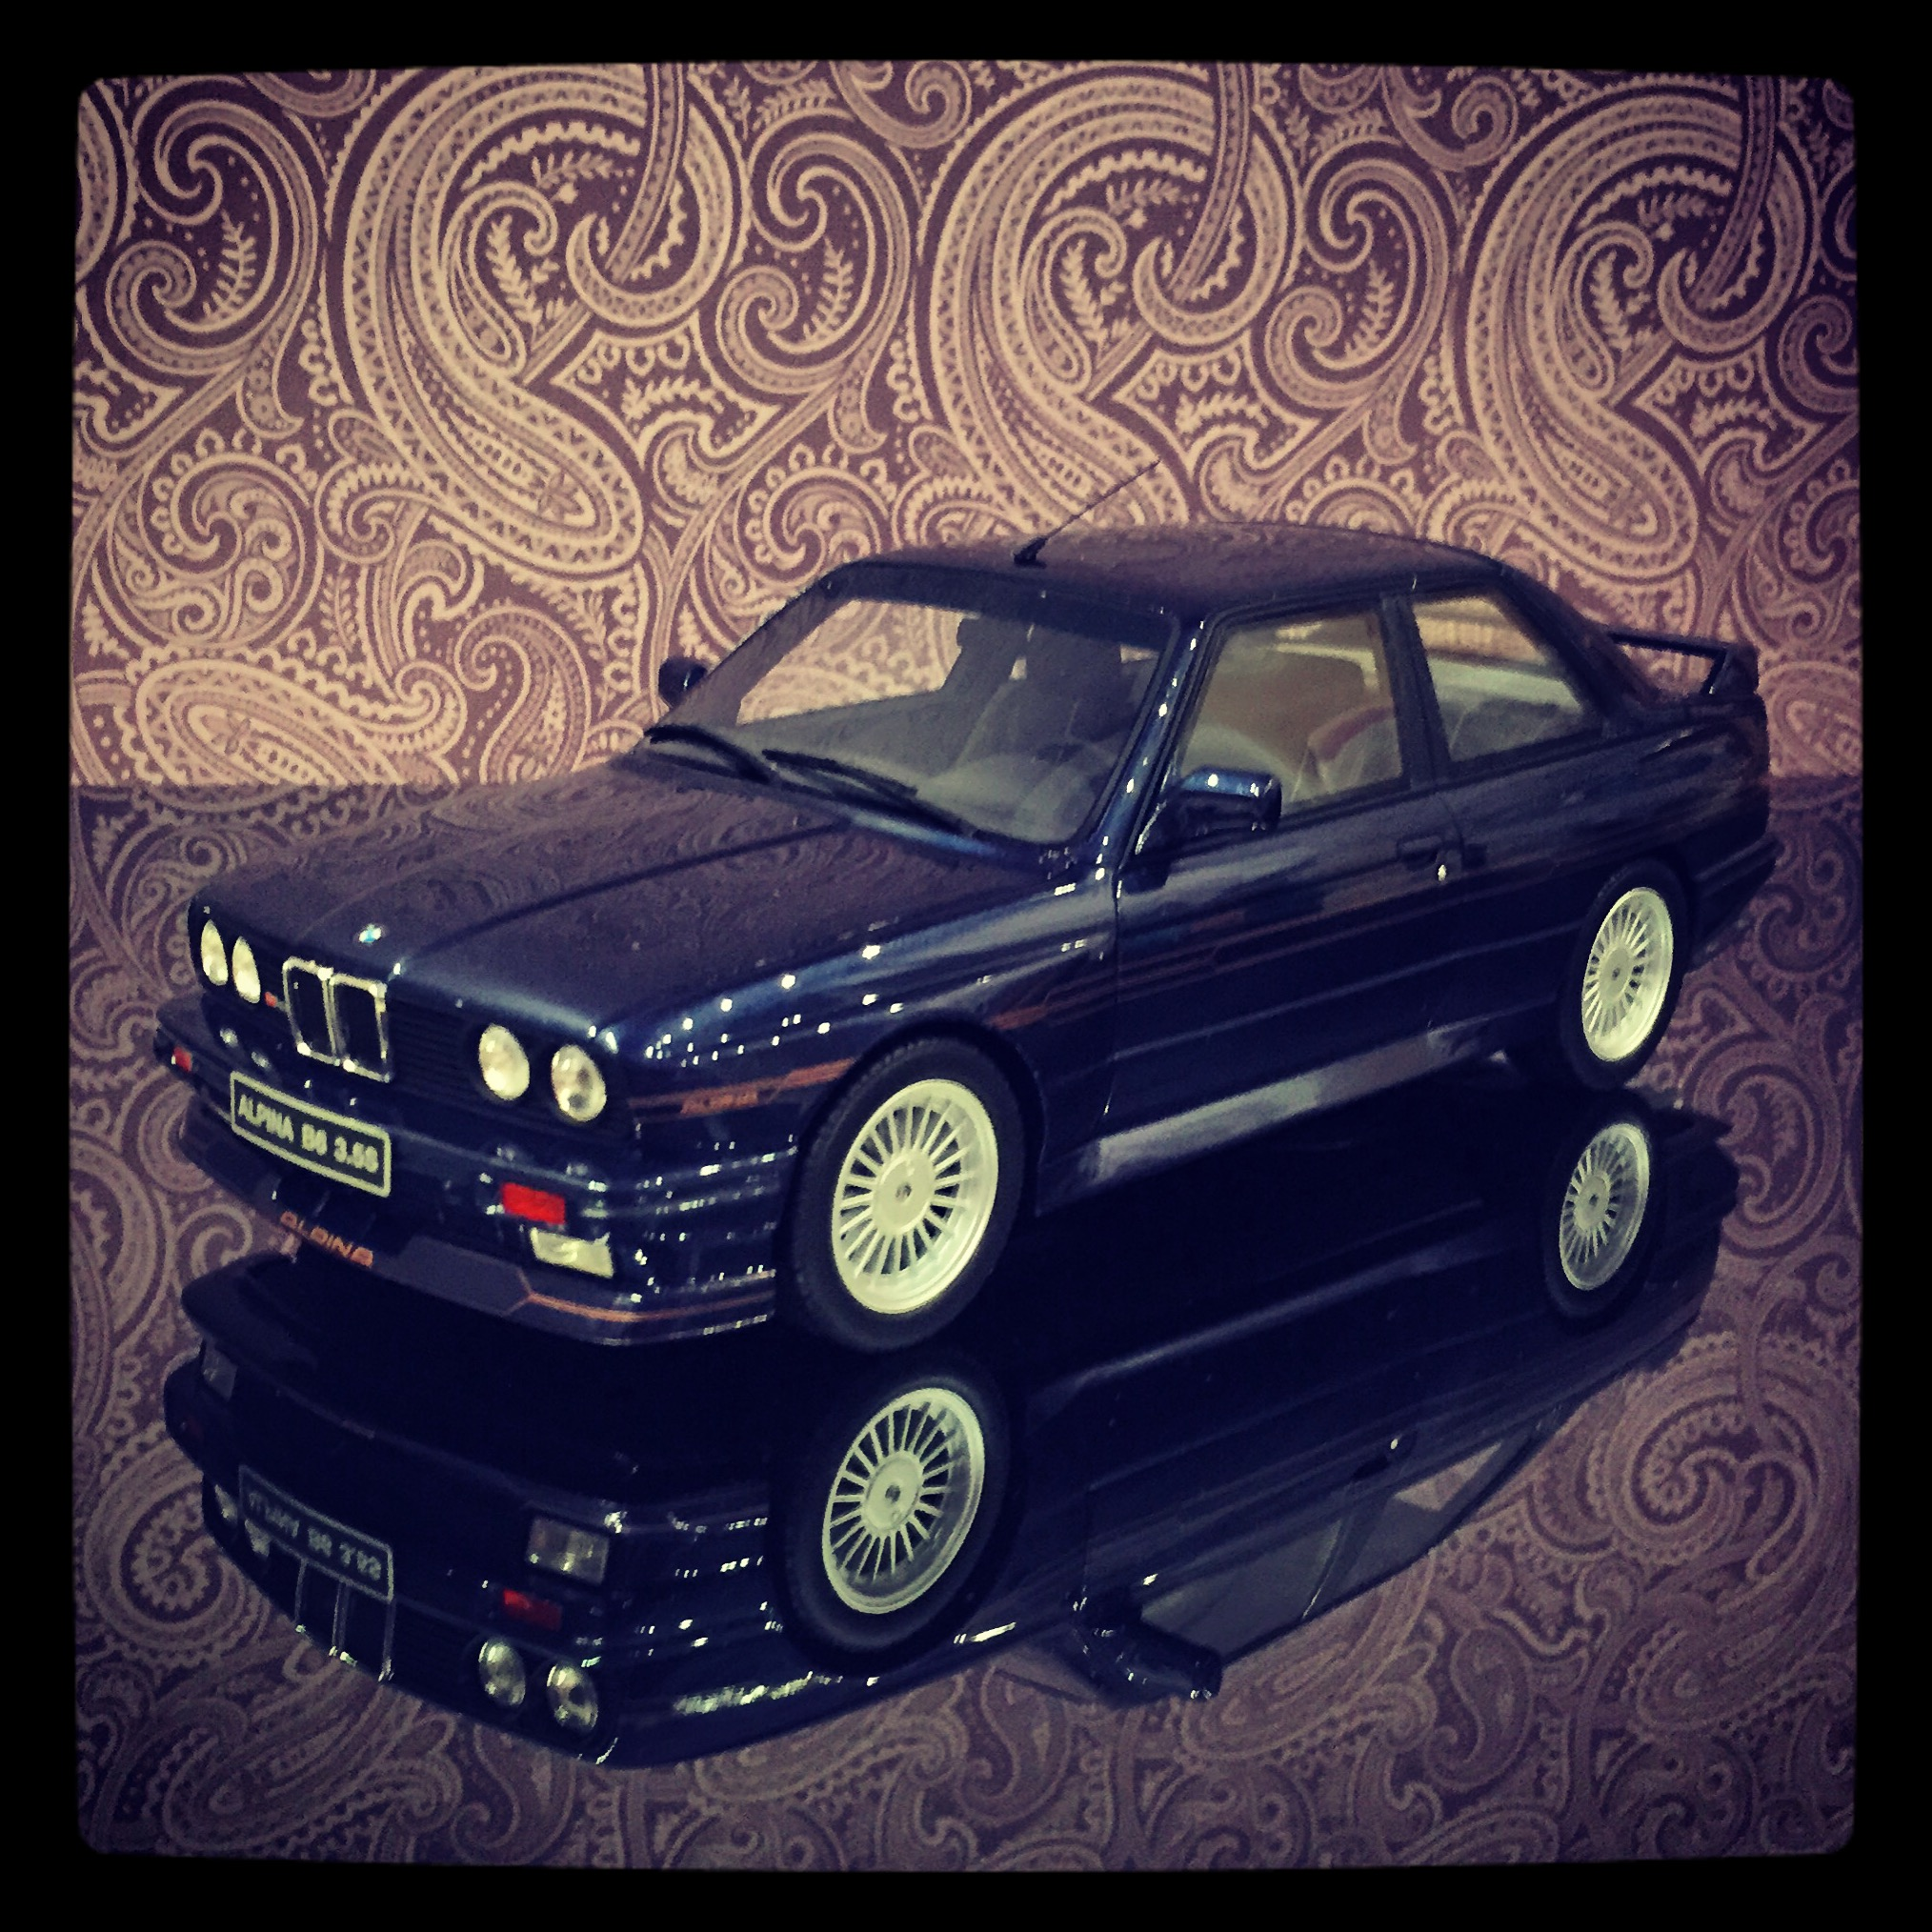 Alpina B6 3.5S (E30), le 537 of 3,000pcs. (otto)